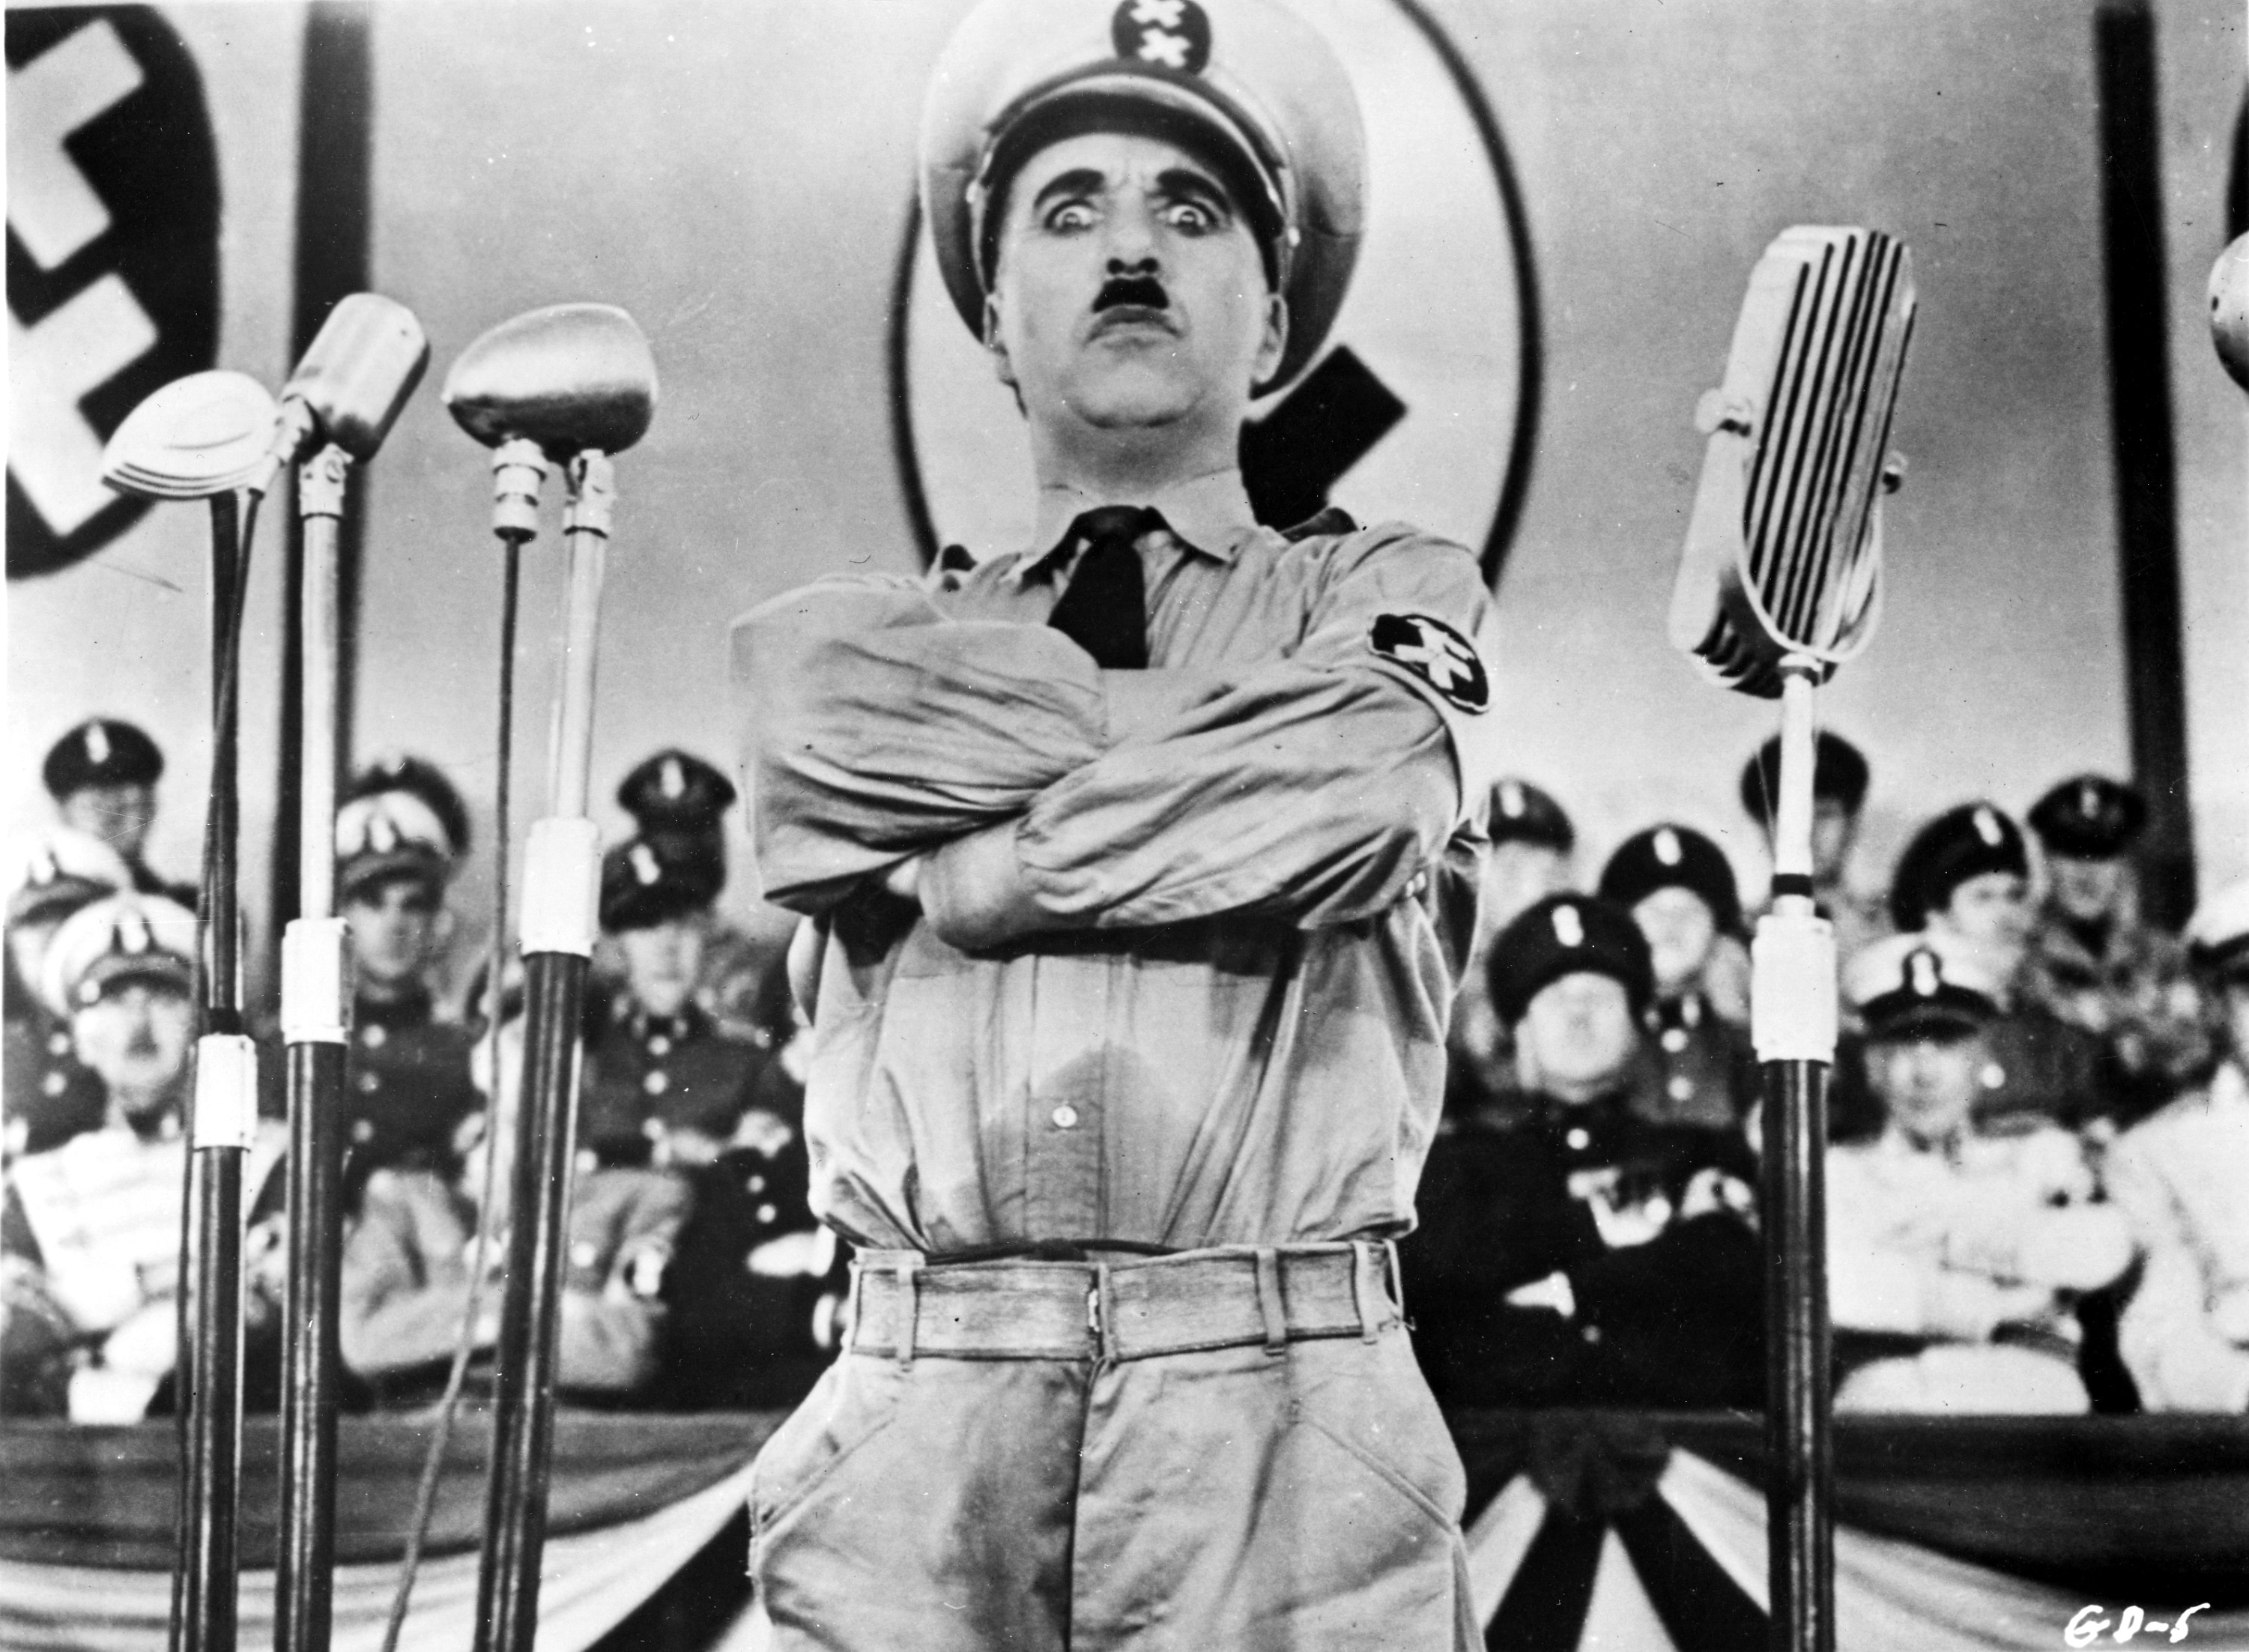 the characterization of adolf hitler by charlie chaplin in the great dictator